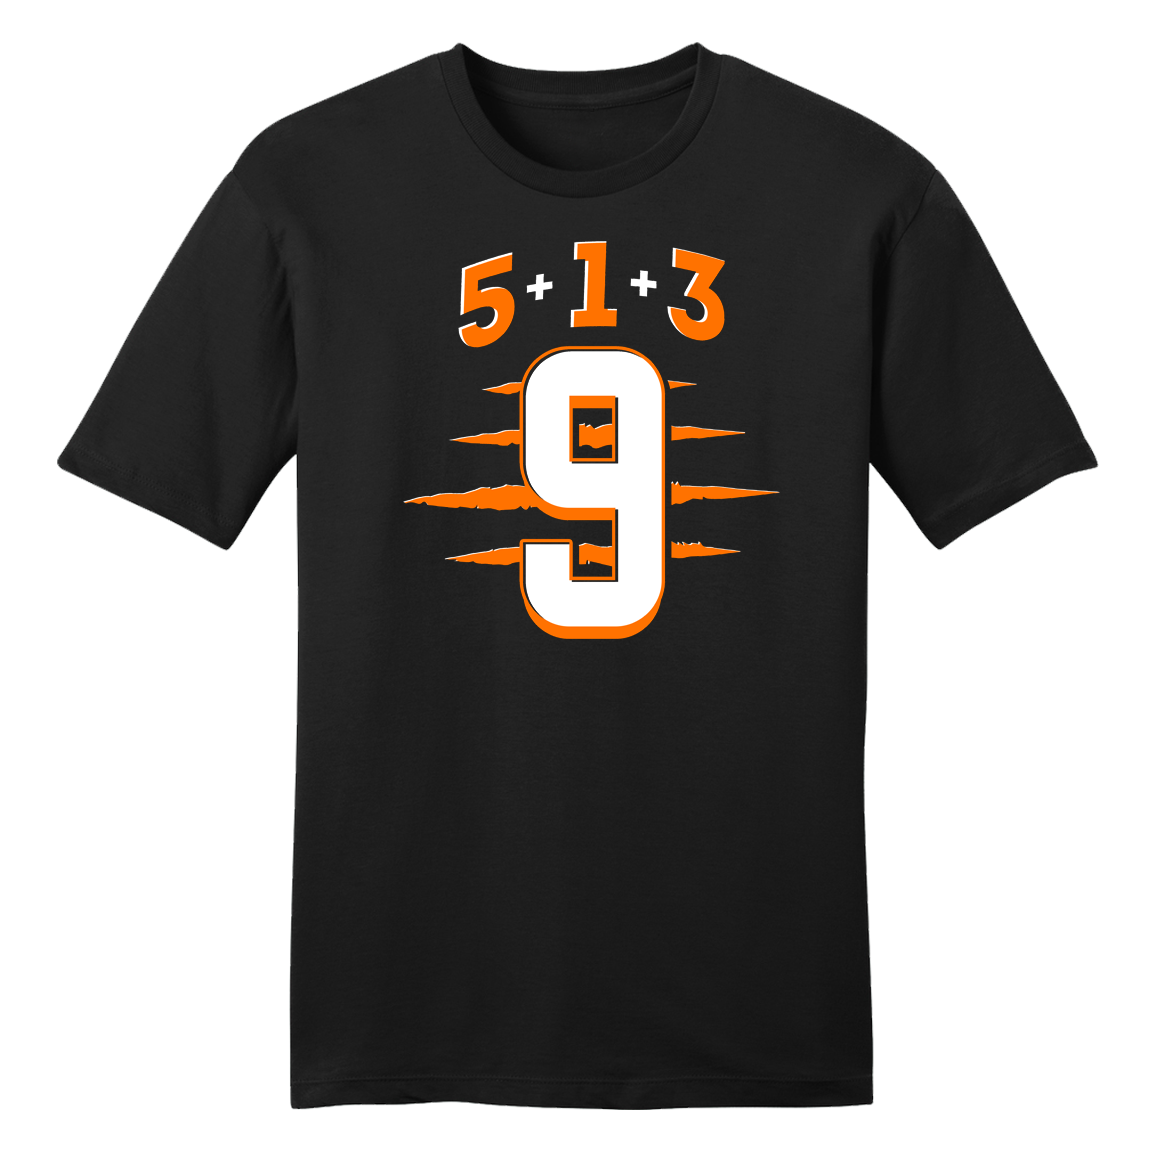 Joe 5+1+3=9 Tee - Cincy Shirts